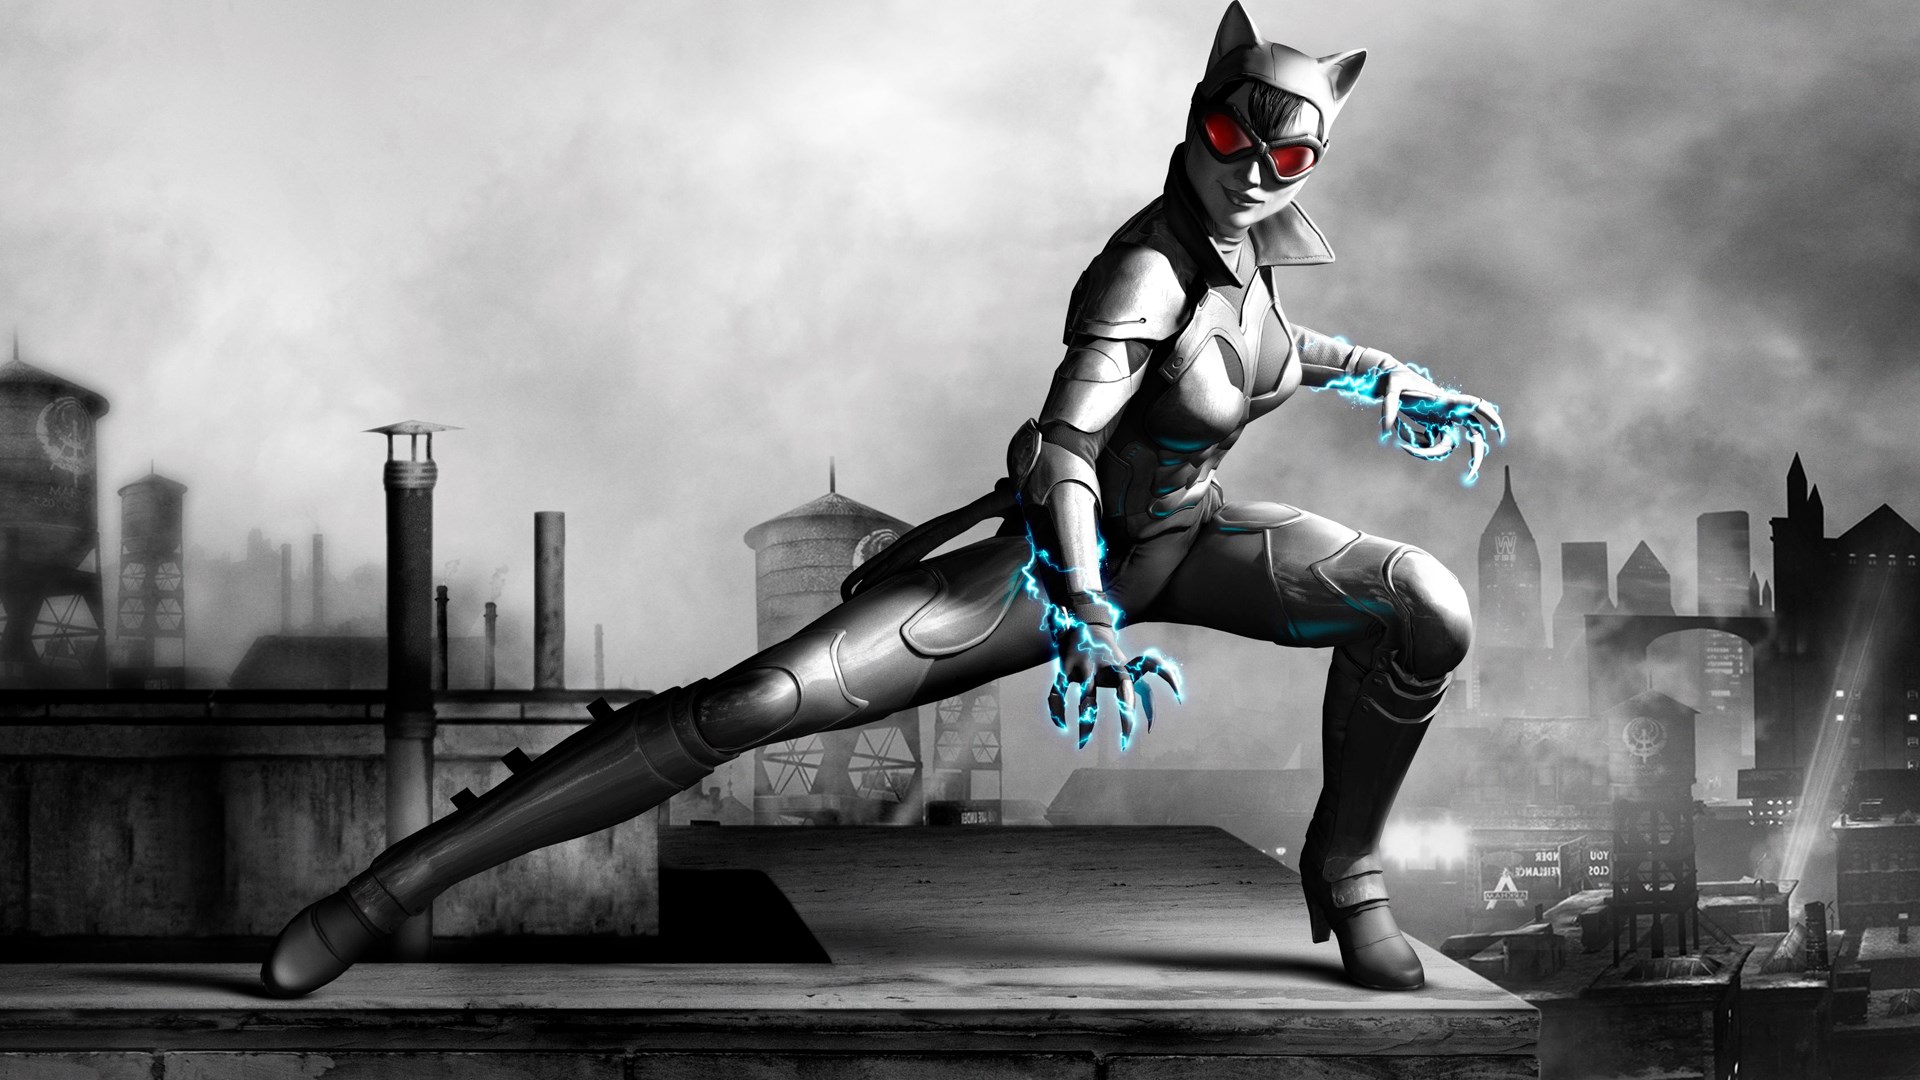 1920x1080-widescreen-batman-arkham-city-wallpaper-wpc9001090